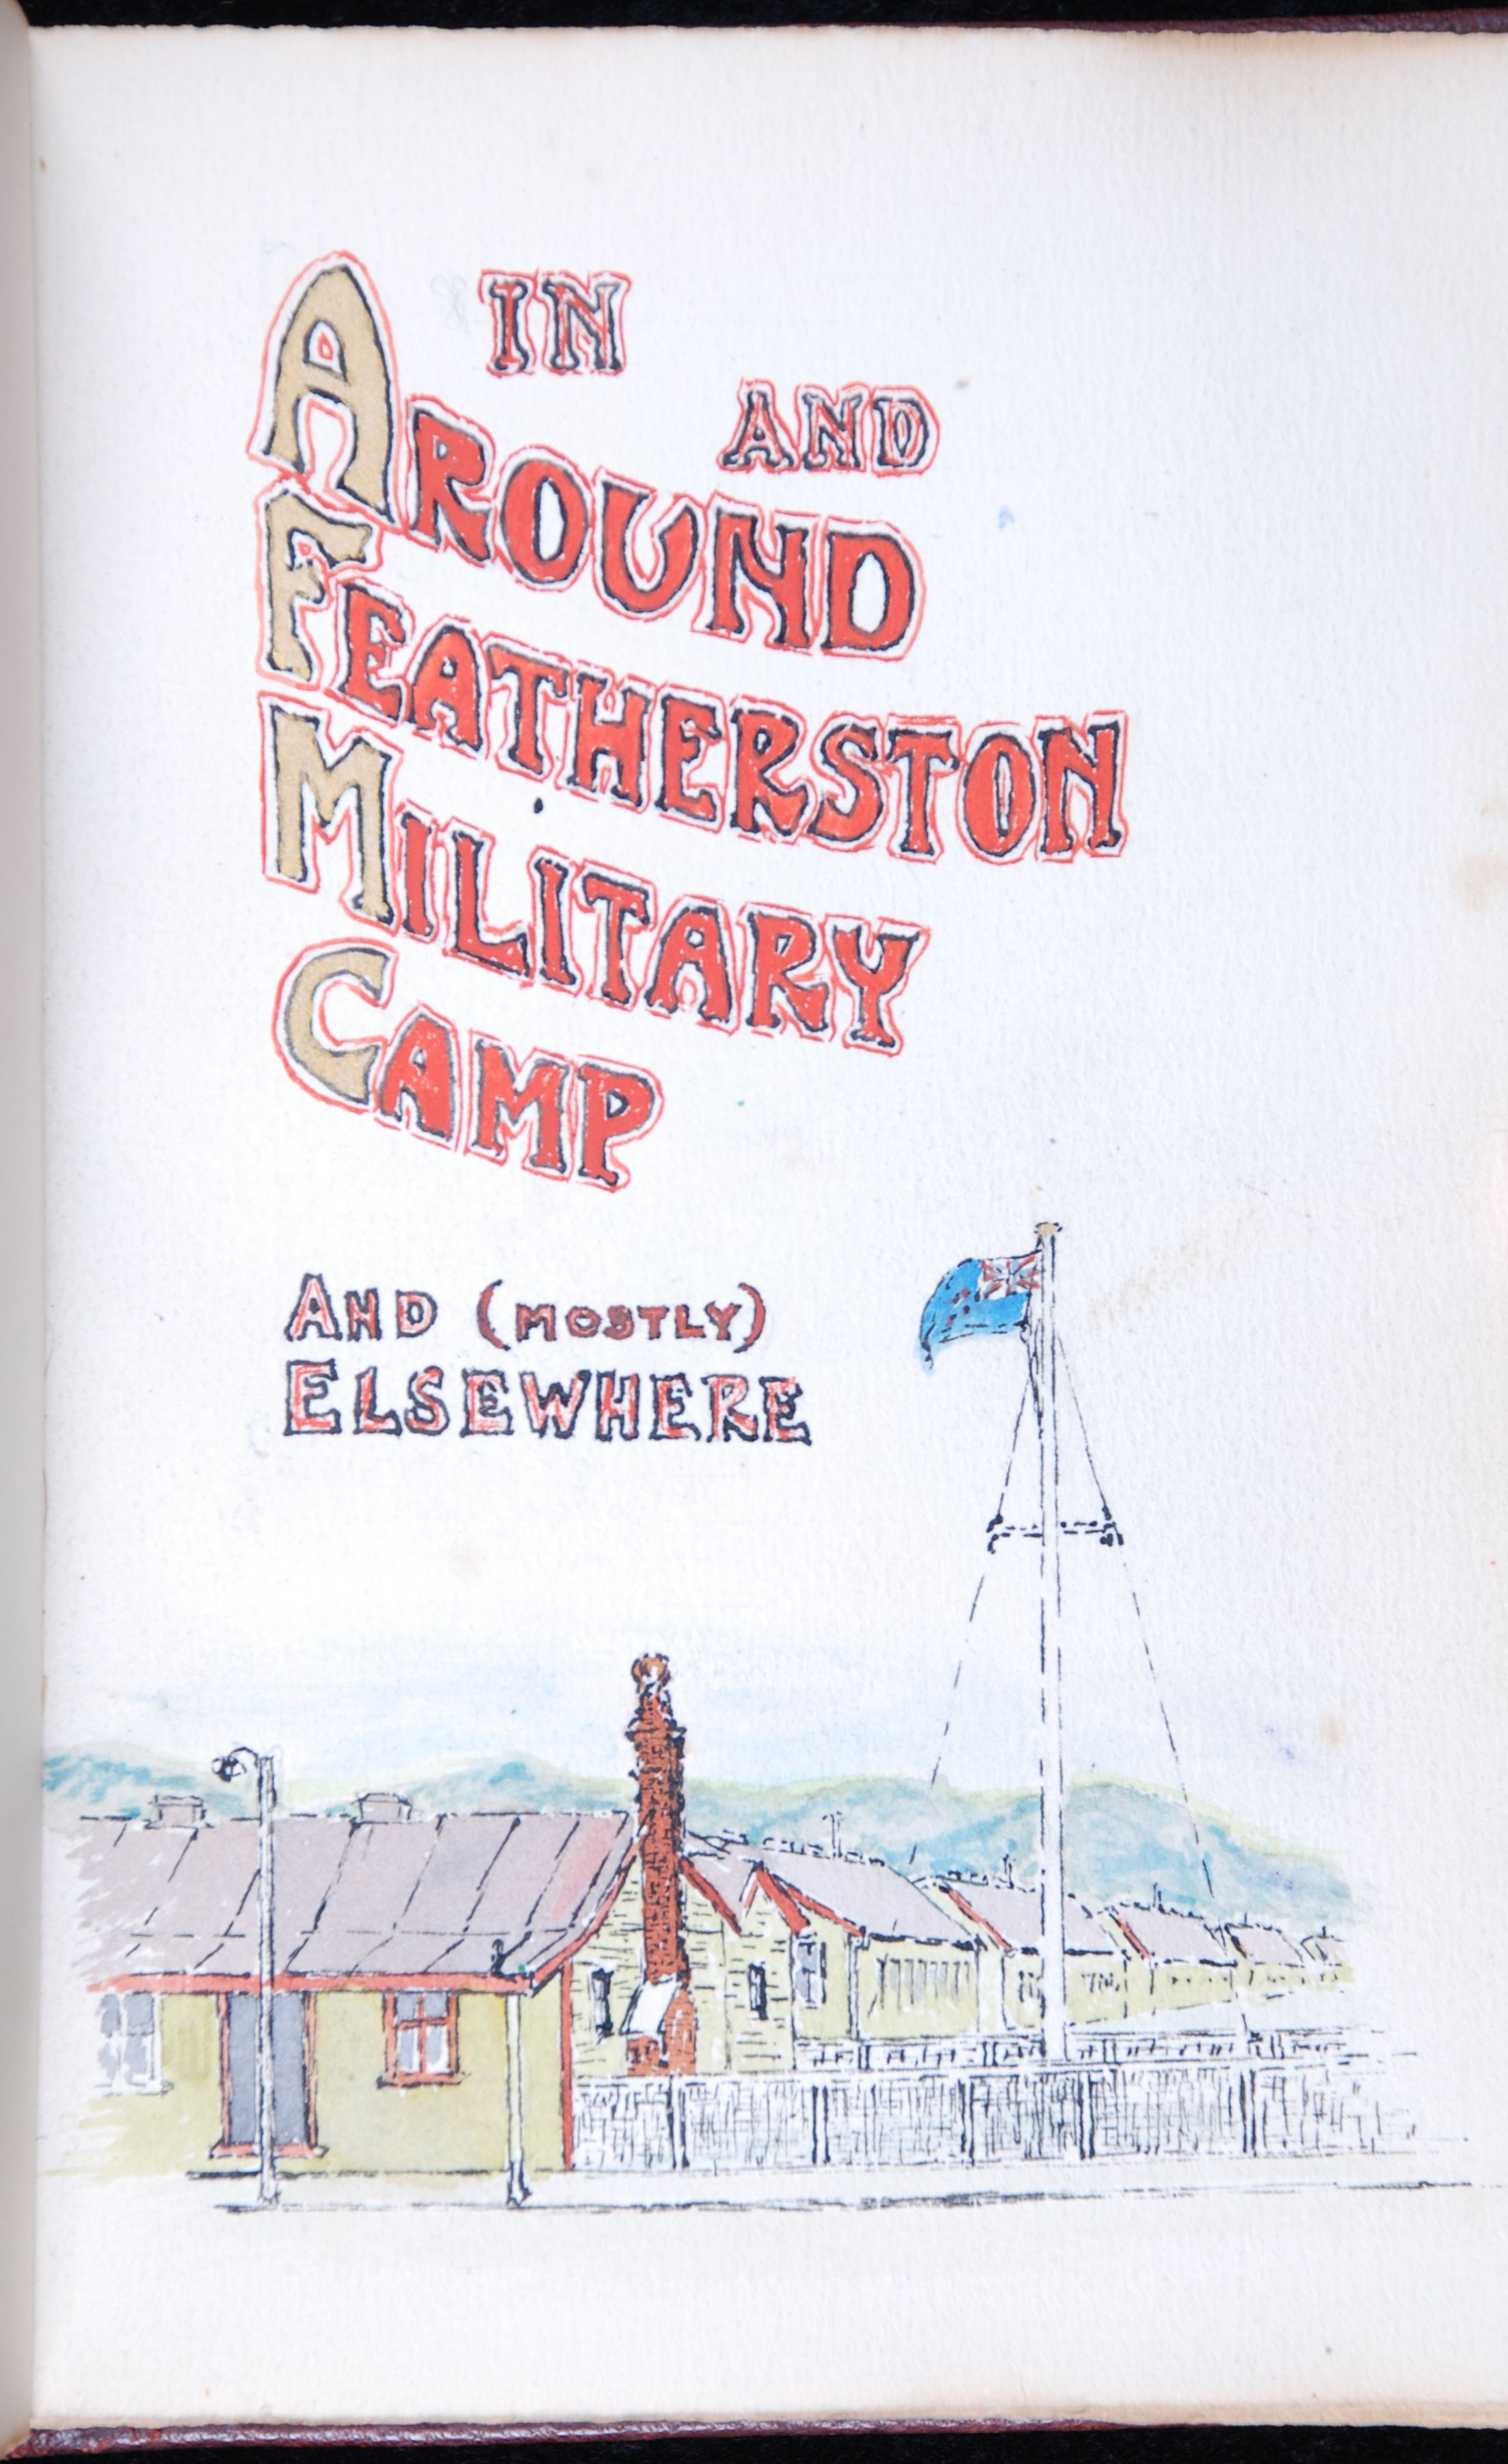 A.H. Reed. In and around Featherston Military Camp: and (mostly) elsewhere. 1917.